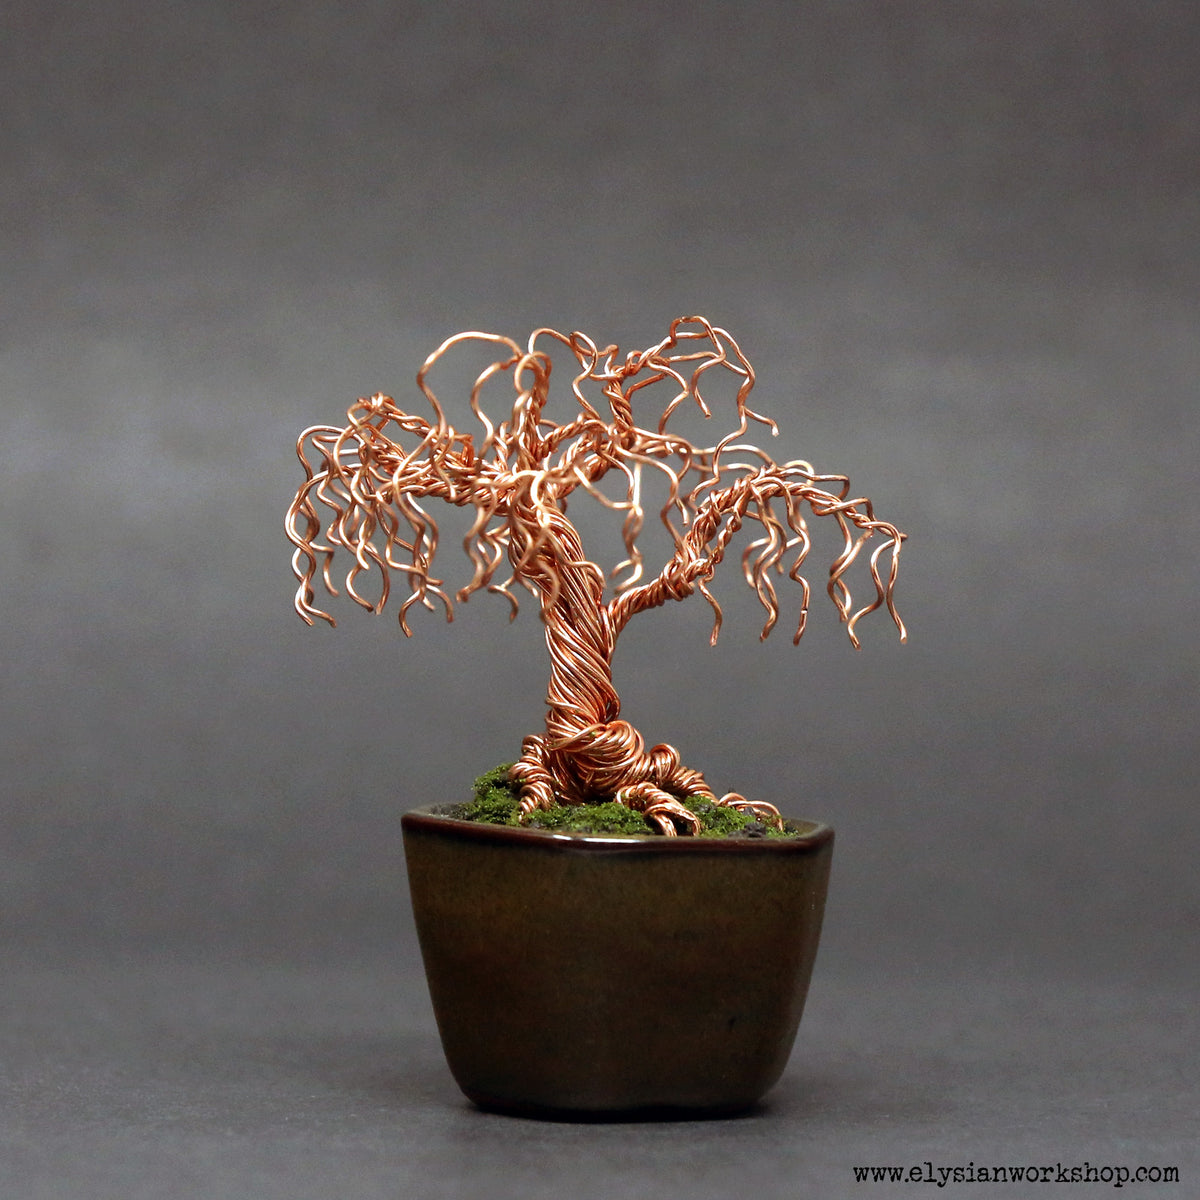 Polished Copper Willow Bonsai Tree Elysian Workshop